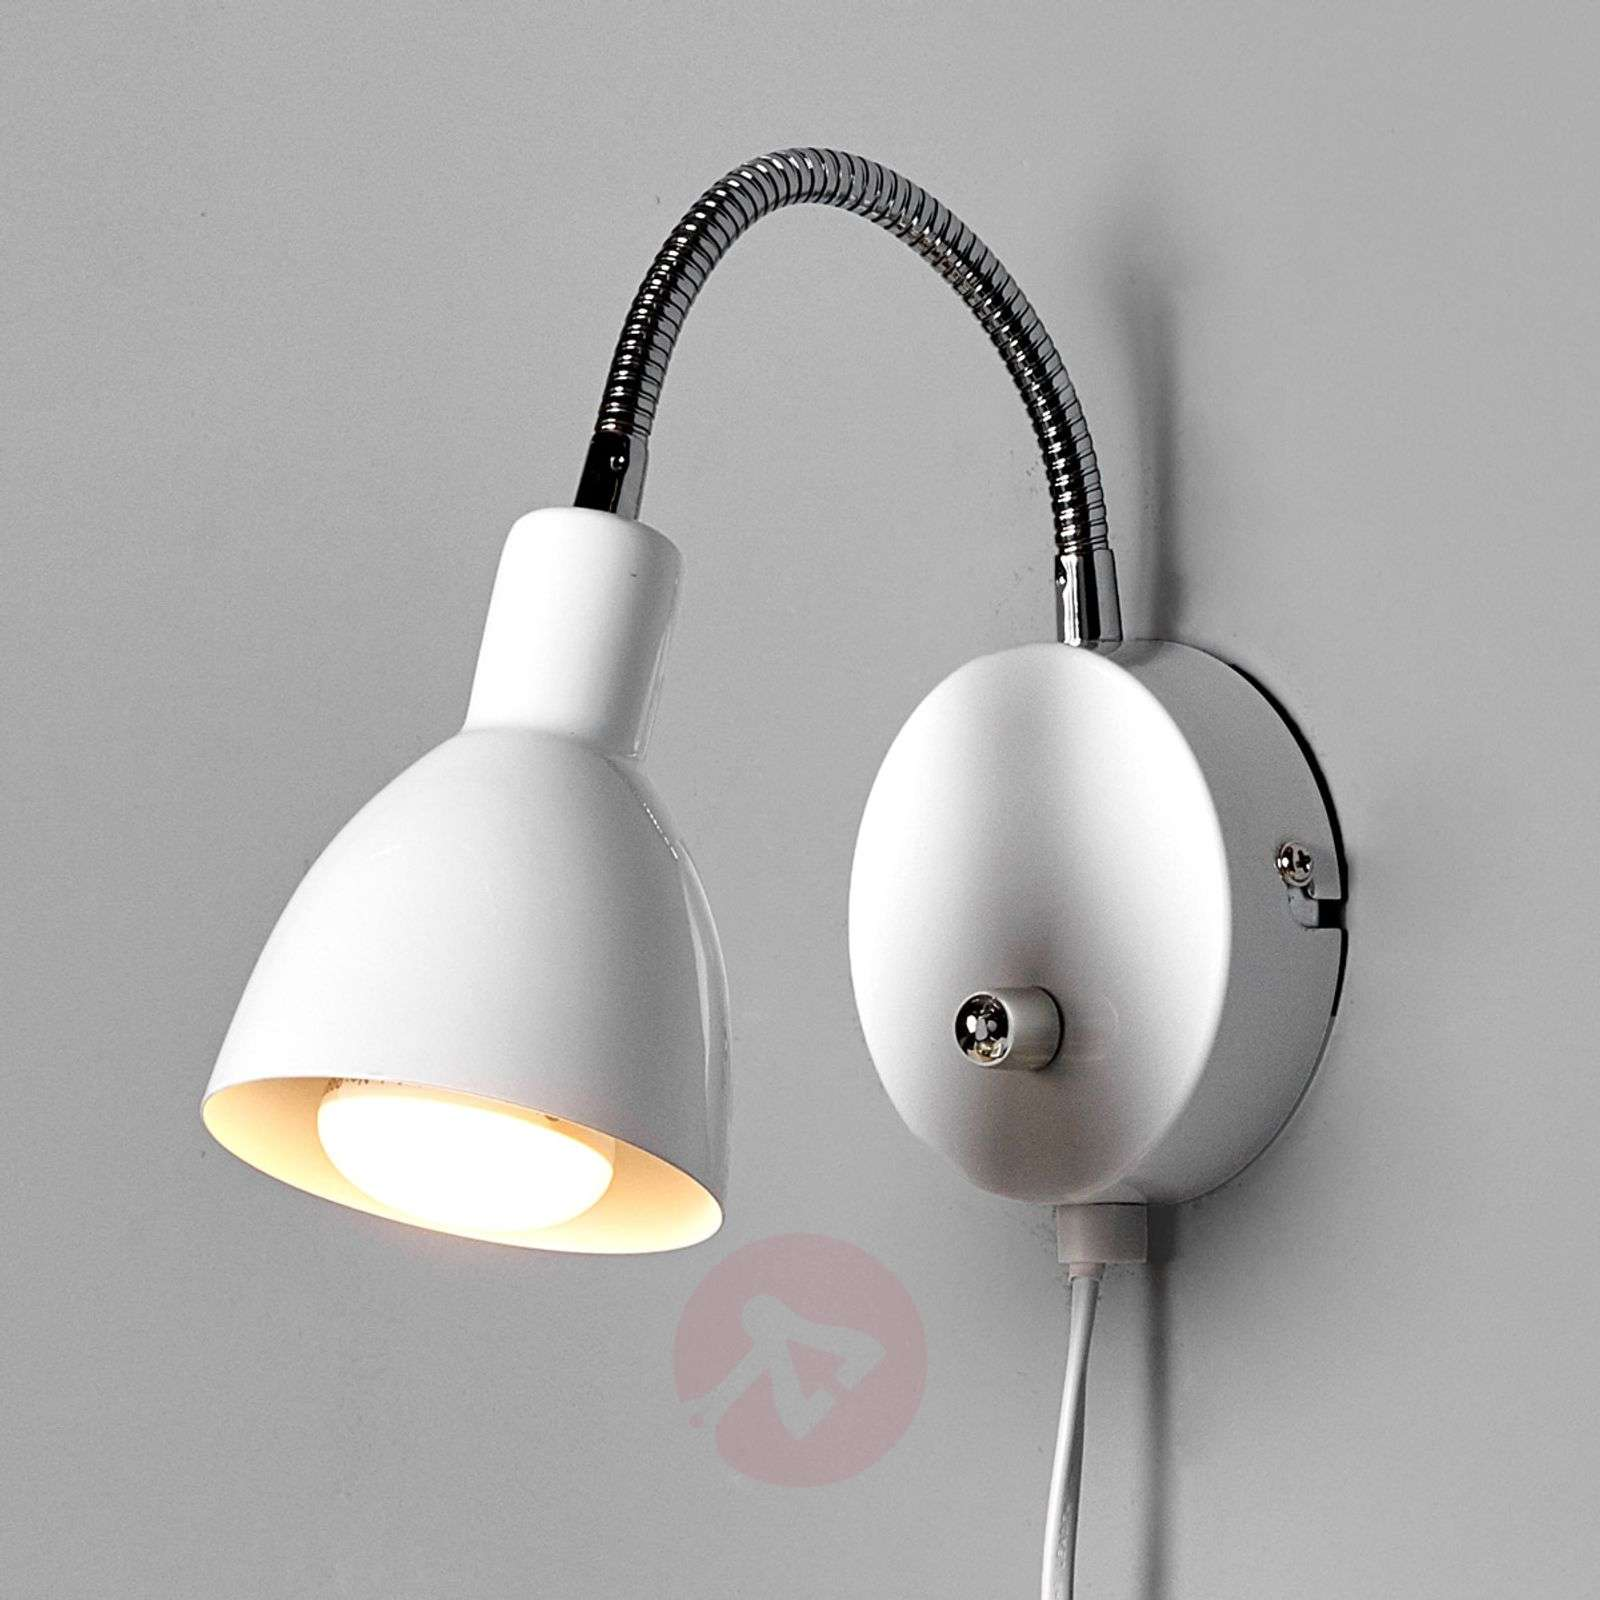 White amrei metal wall light with dimmer lights white amrei metal wall light with dimmer 9620261 01 aloadofball Image collections